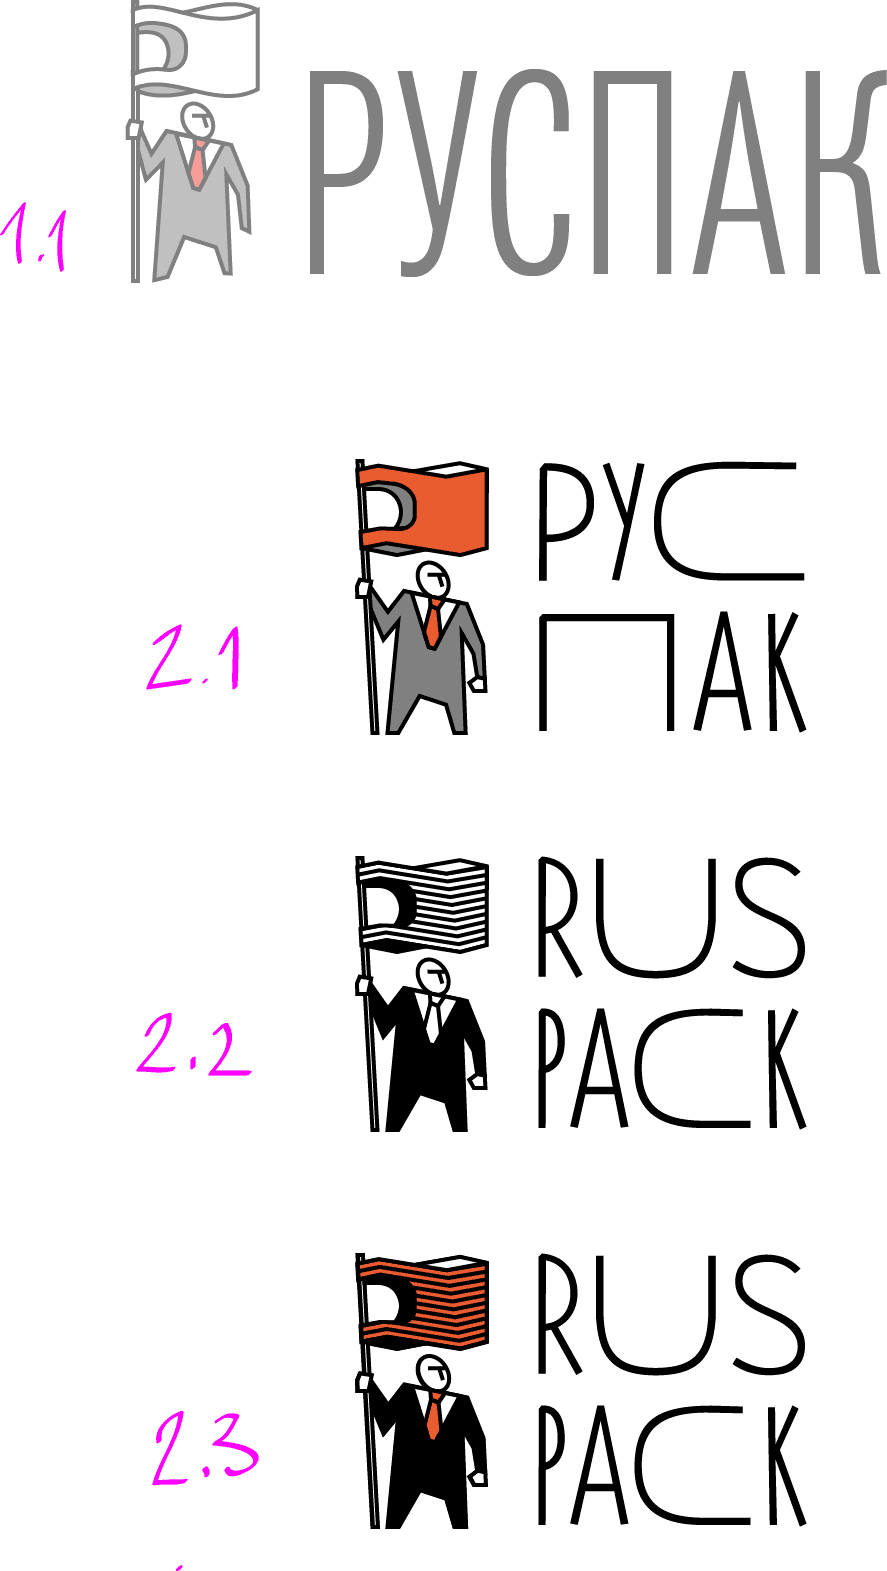 ruspack process 03